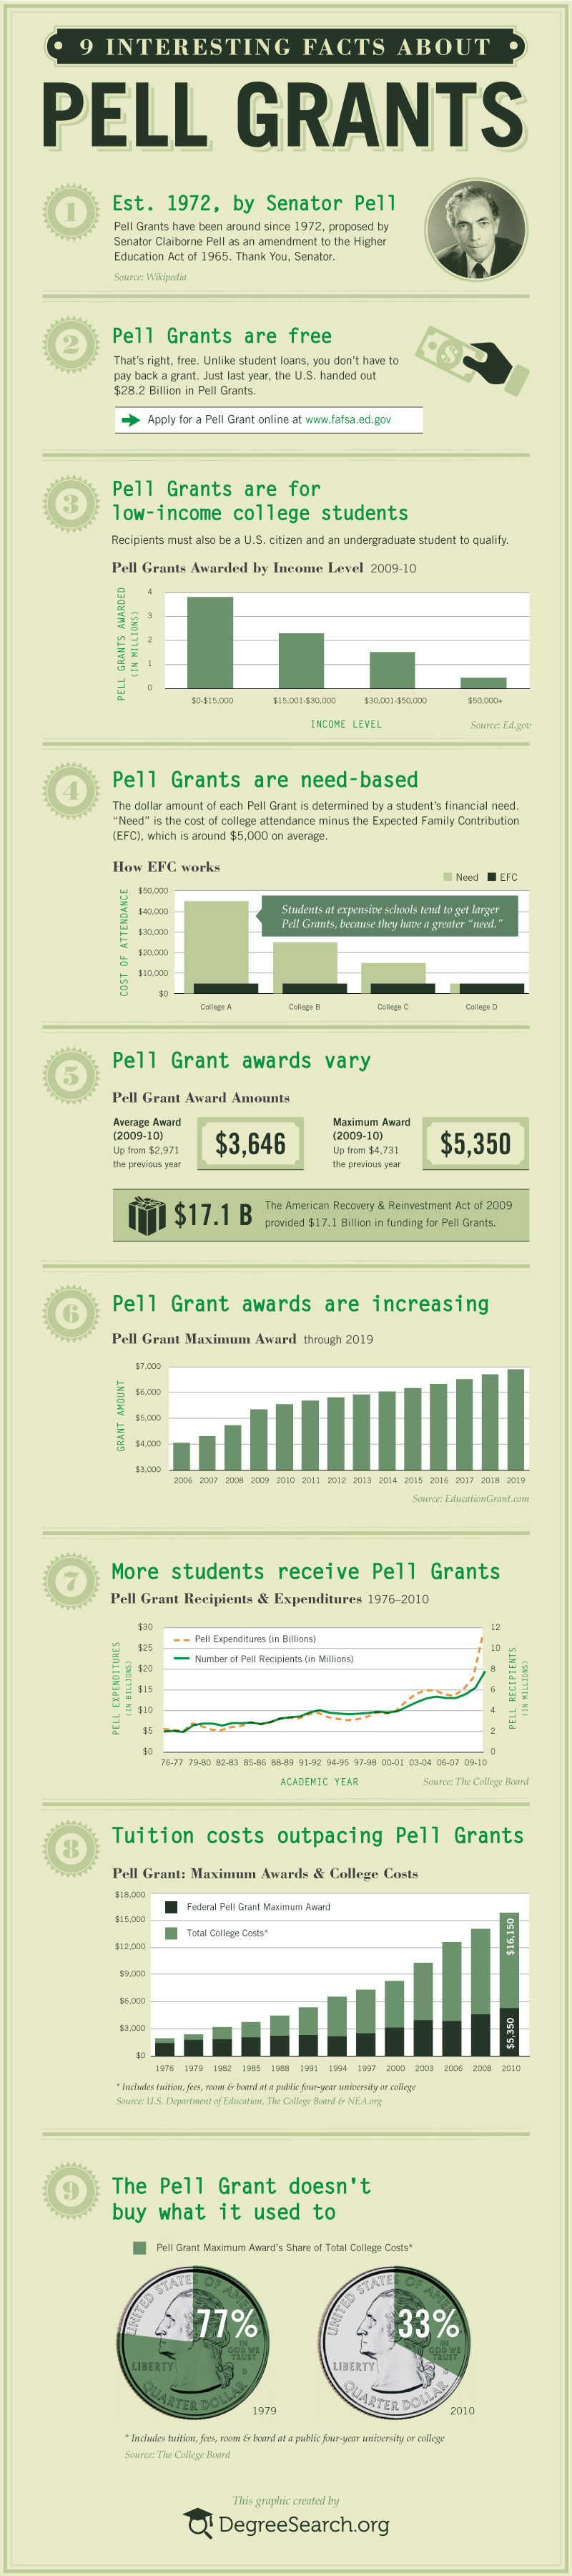 9 Interesting Facts About Pell Grants